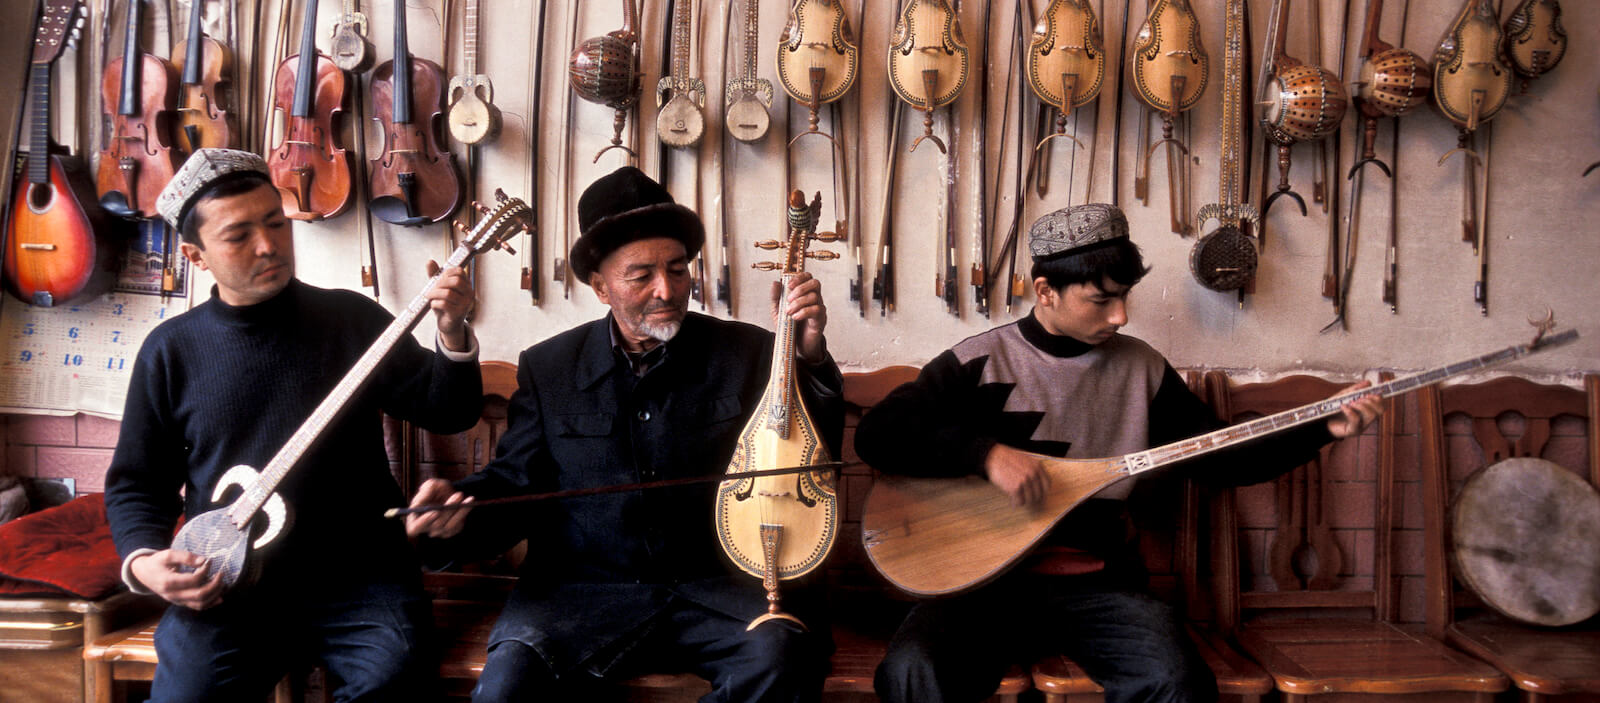 Ababekry Selay with son and employee playing traditional Uighur music in their shop in Kashgar city (Photo: Christopher Pillitz/Getty)